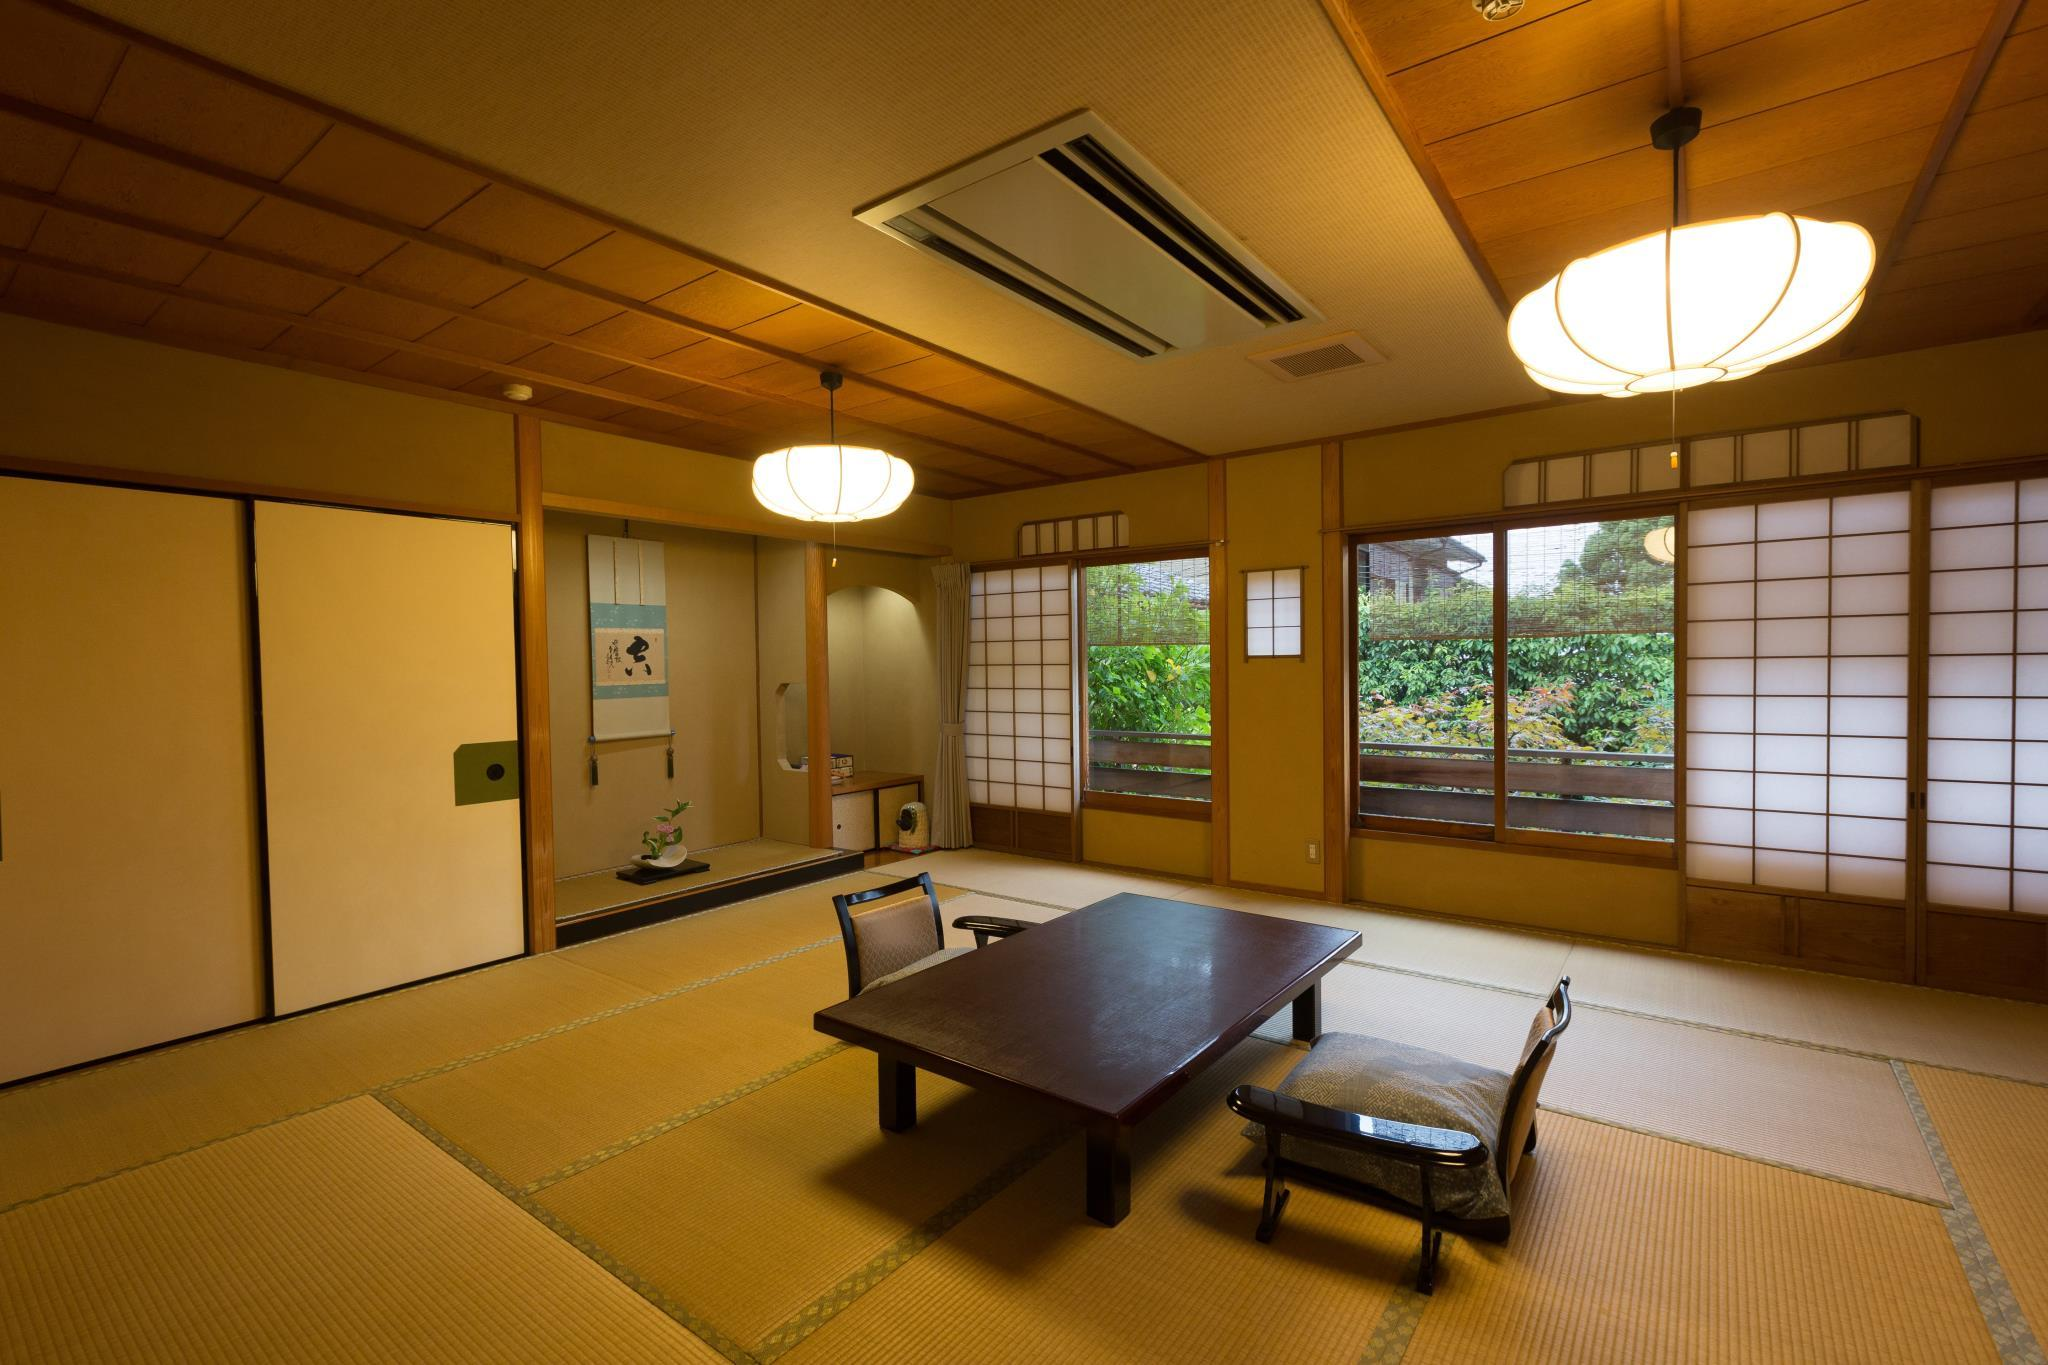 Habitación estilo japonés con baño al aire libre (Japanese Room with Open-Air Bath)